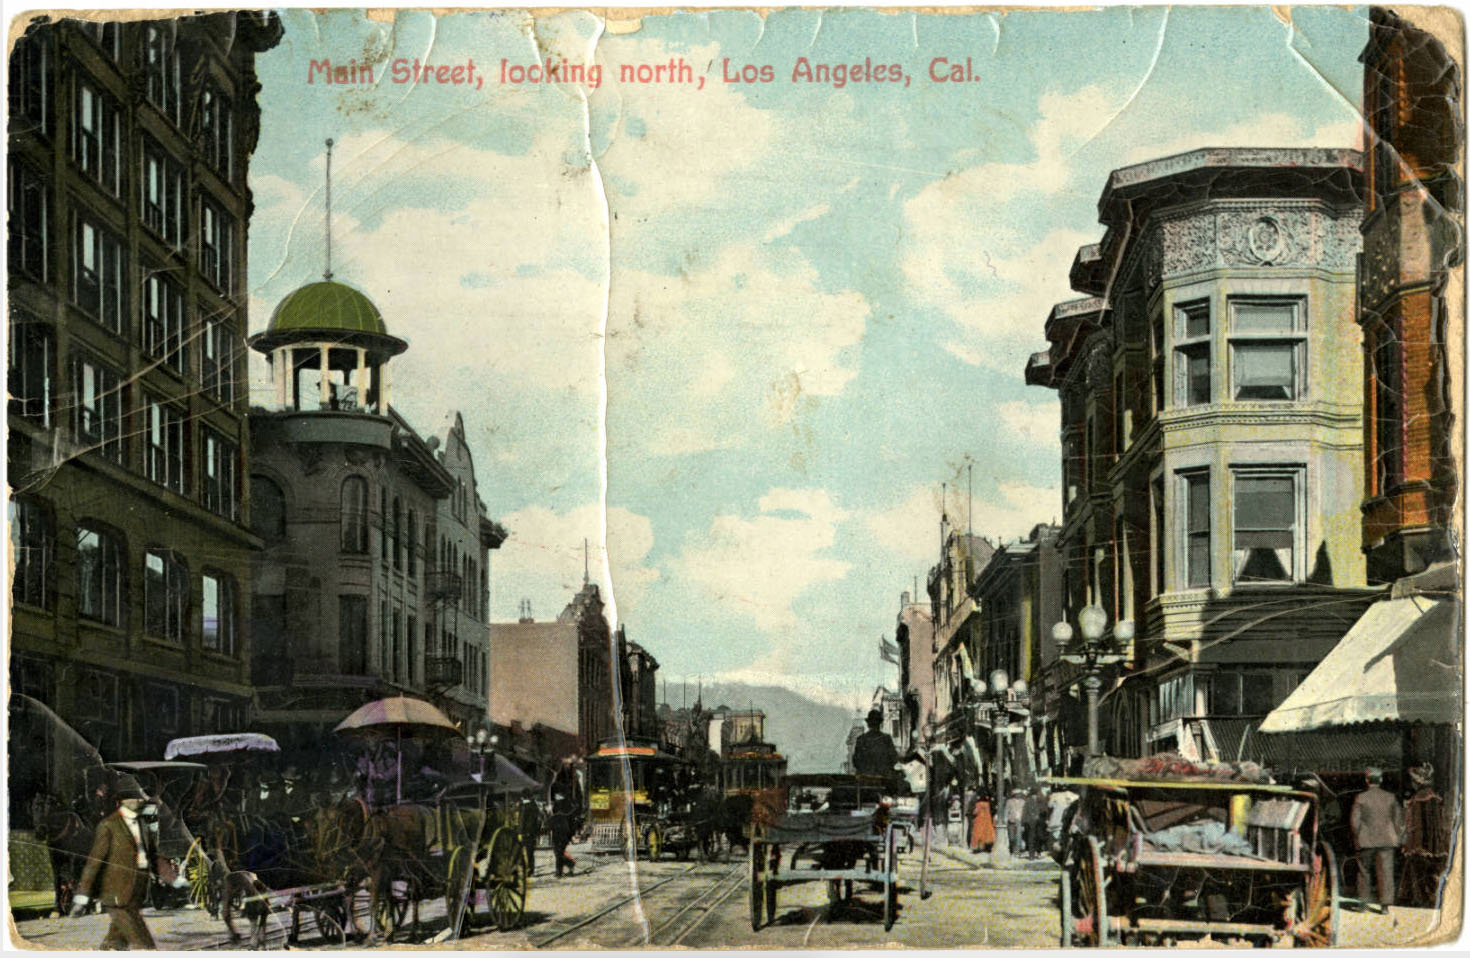 Horse-drawn vehicles dominate this typical early-20th-century L.A. street scene. Courtesy of the Werner von Boltenstern Postcard Collection, Department of Archives and Special Collections, William H. Hannon Library, Loyola Marymount University.